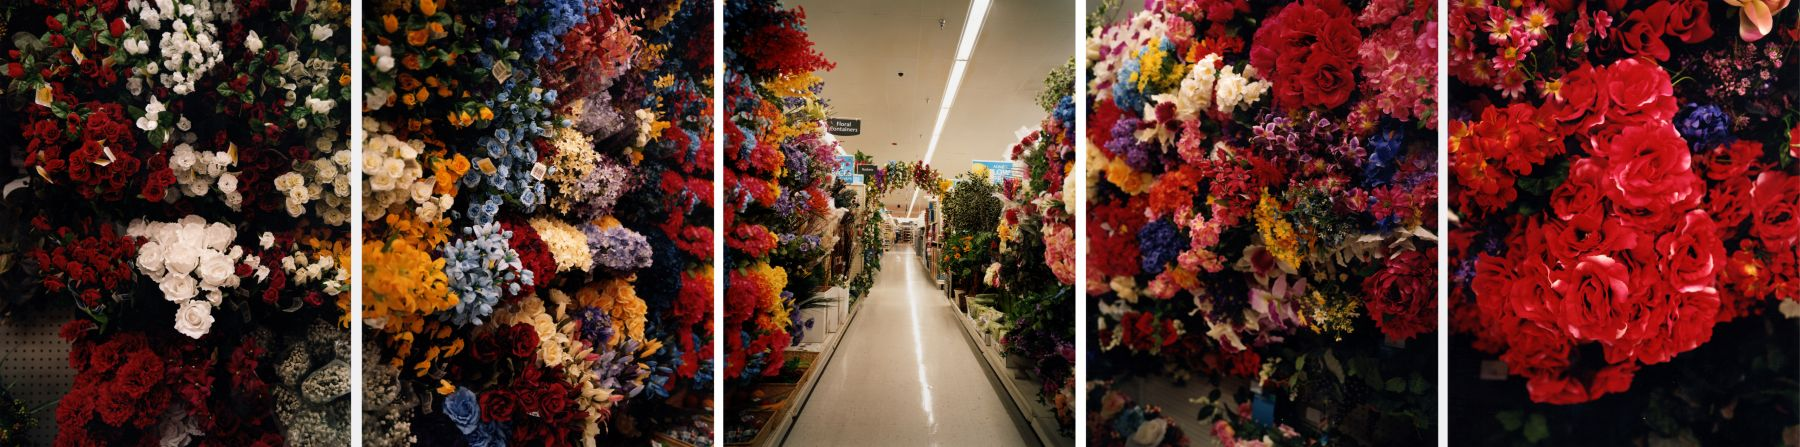 Perennial, 2006. Five-panel archival pigment print, available as 24 x 100 or 40 x 150 inches.